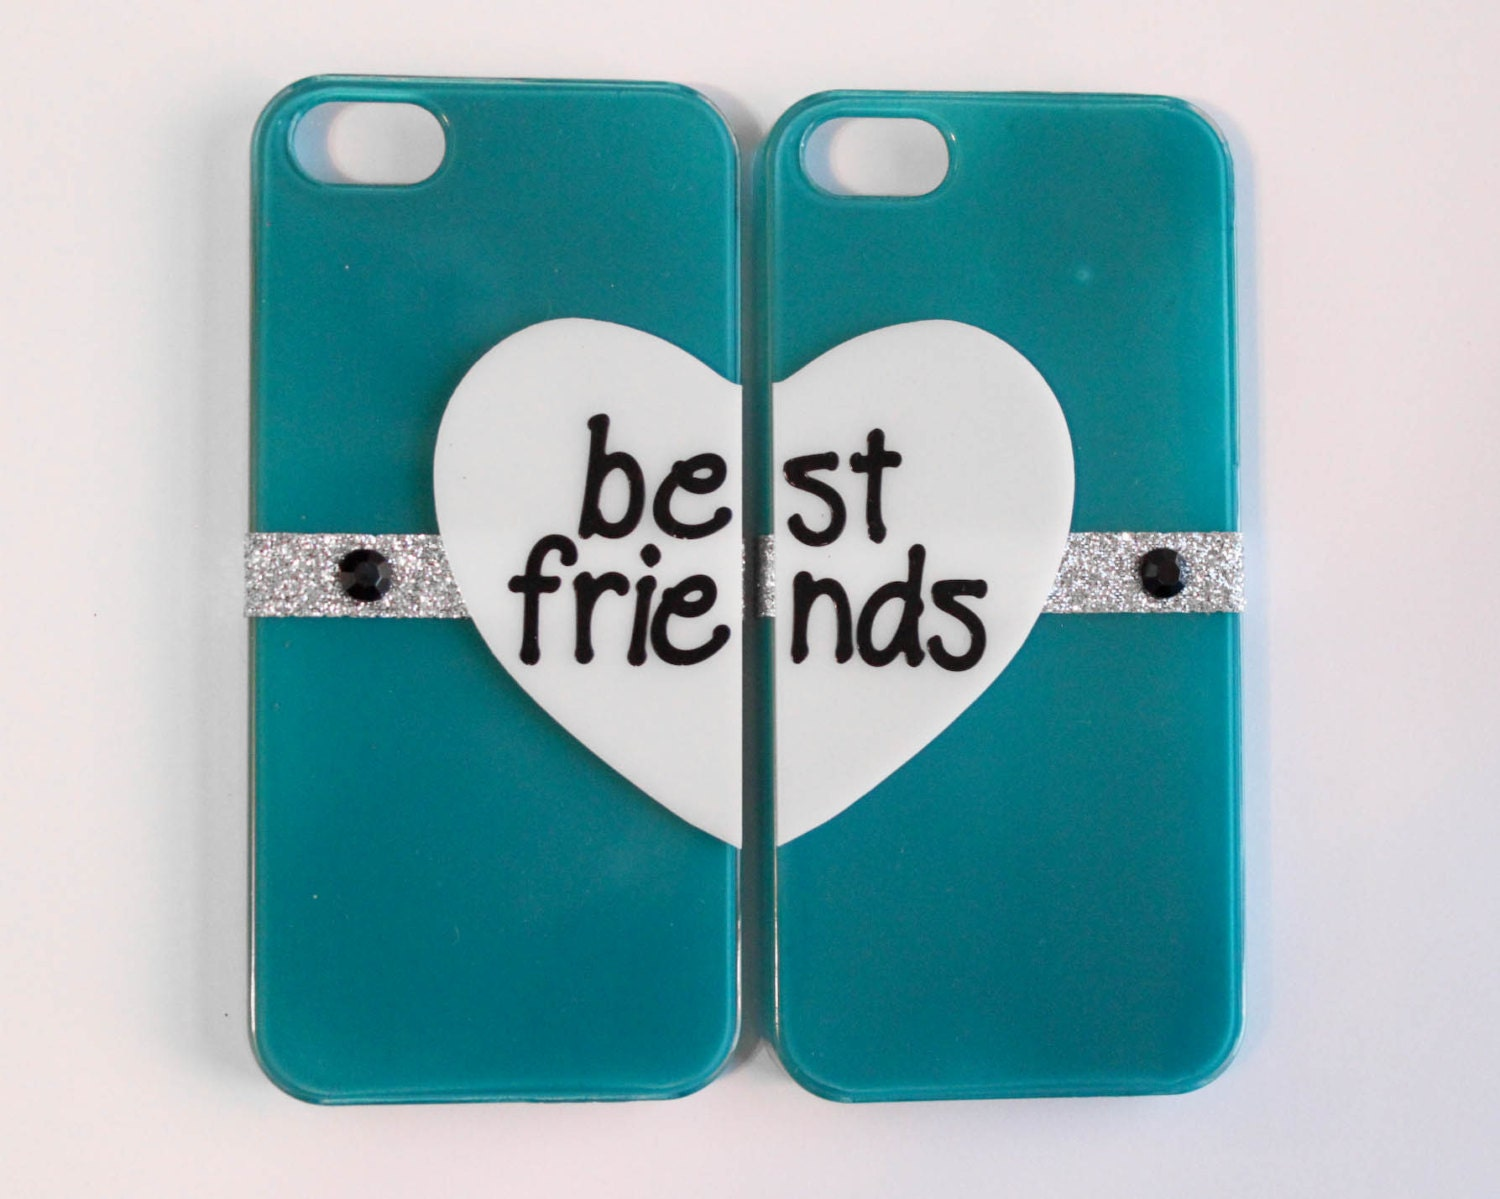 iPhone Case 4/4S - Best Friends iPhone 4/4S cases